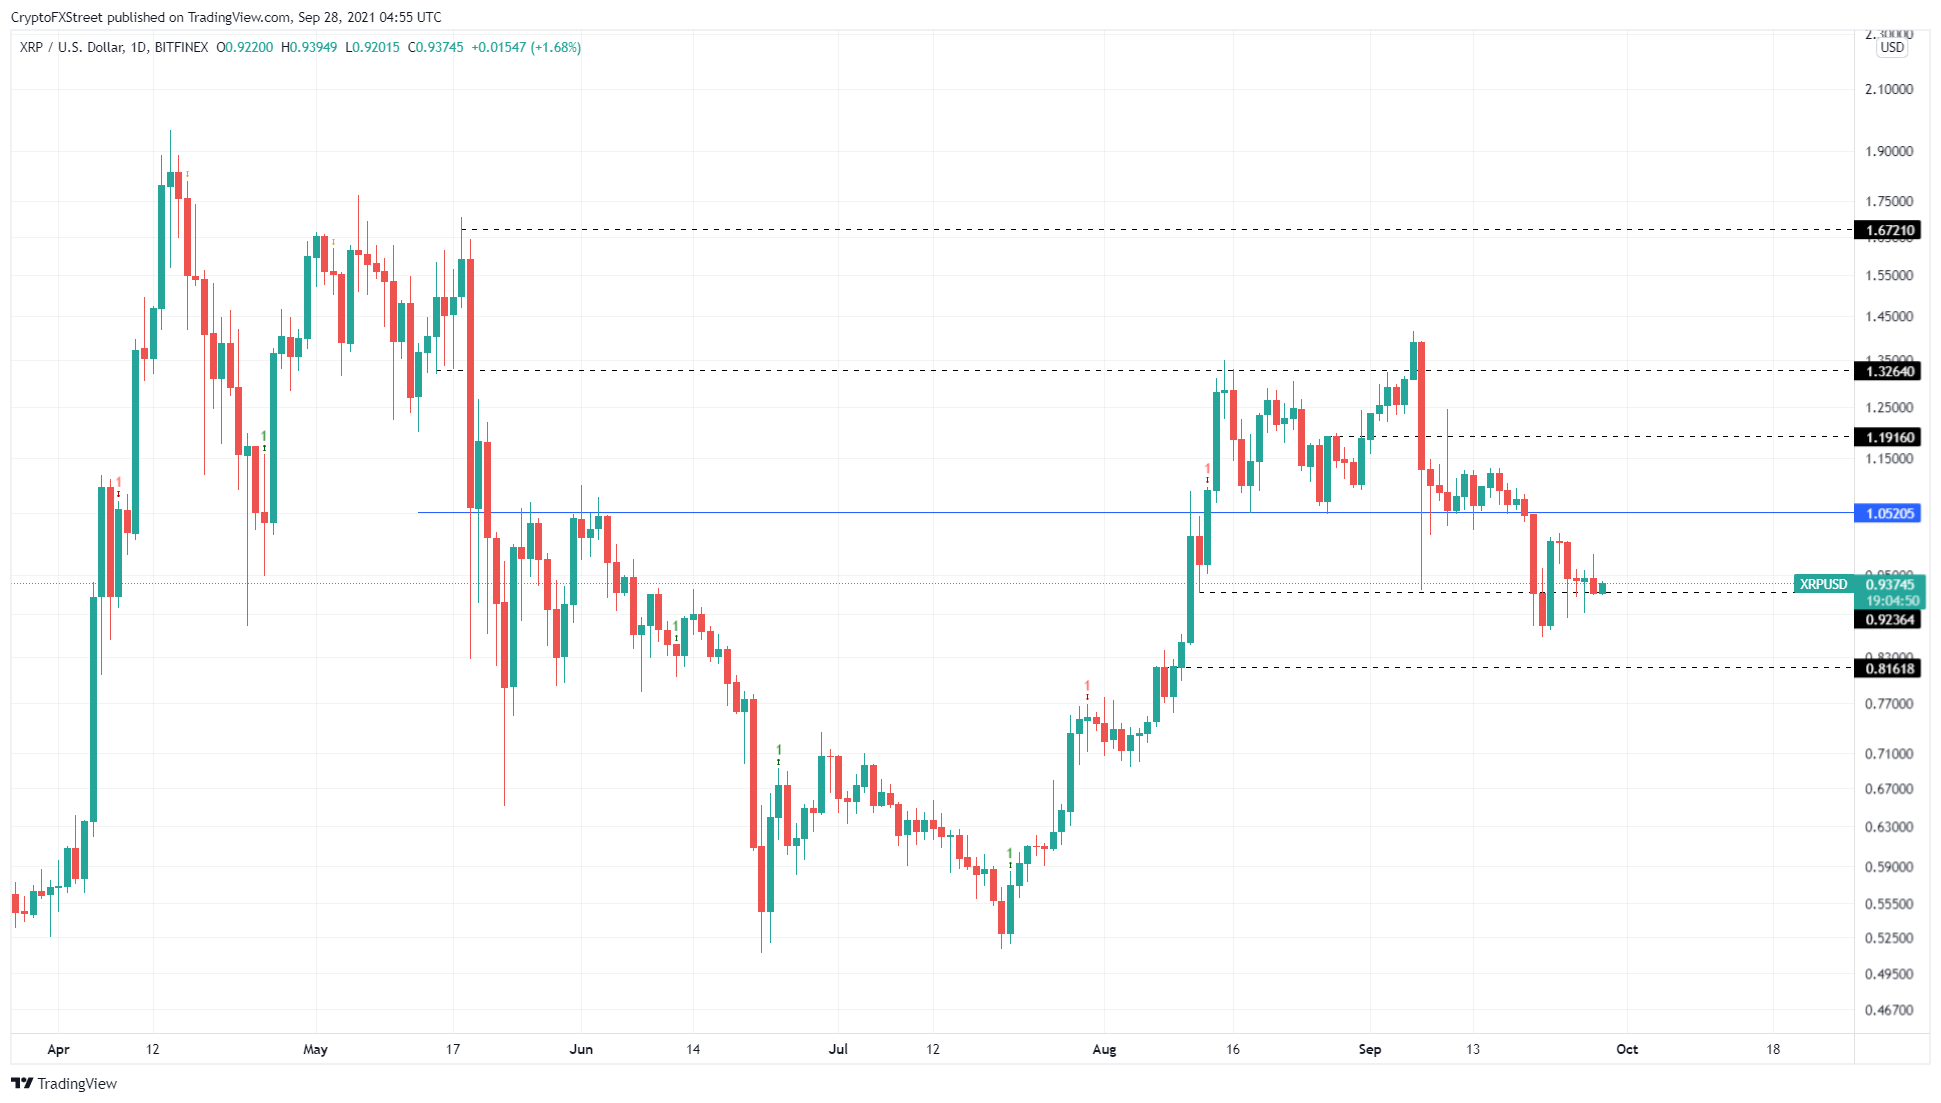 XRP/USD 1-day chart